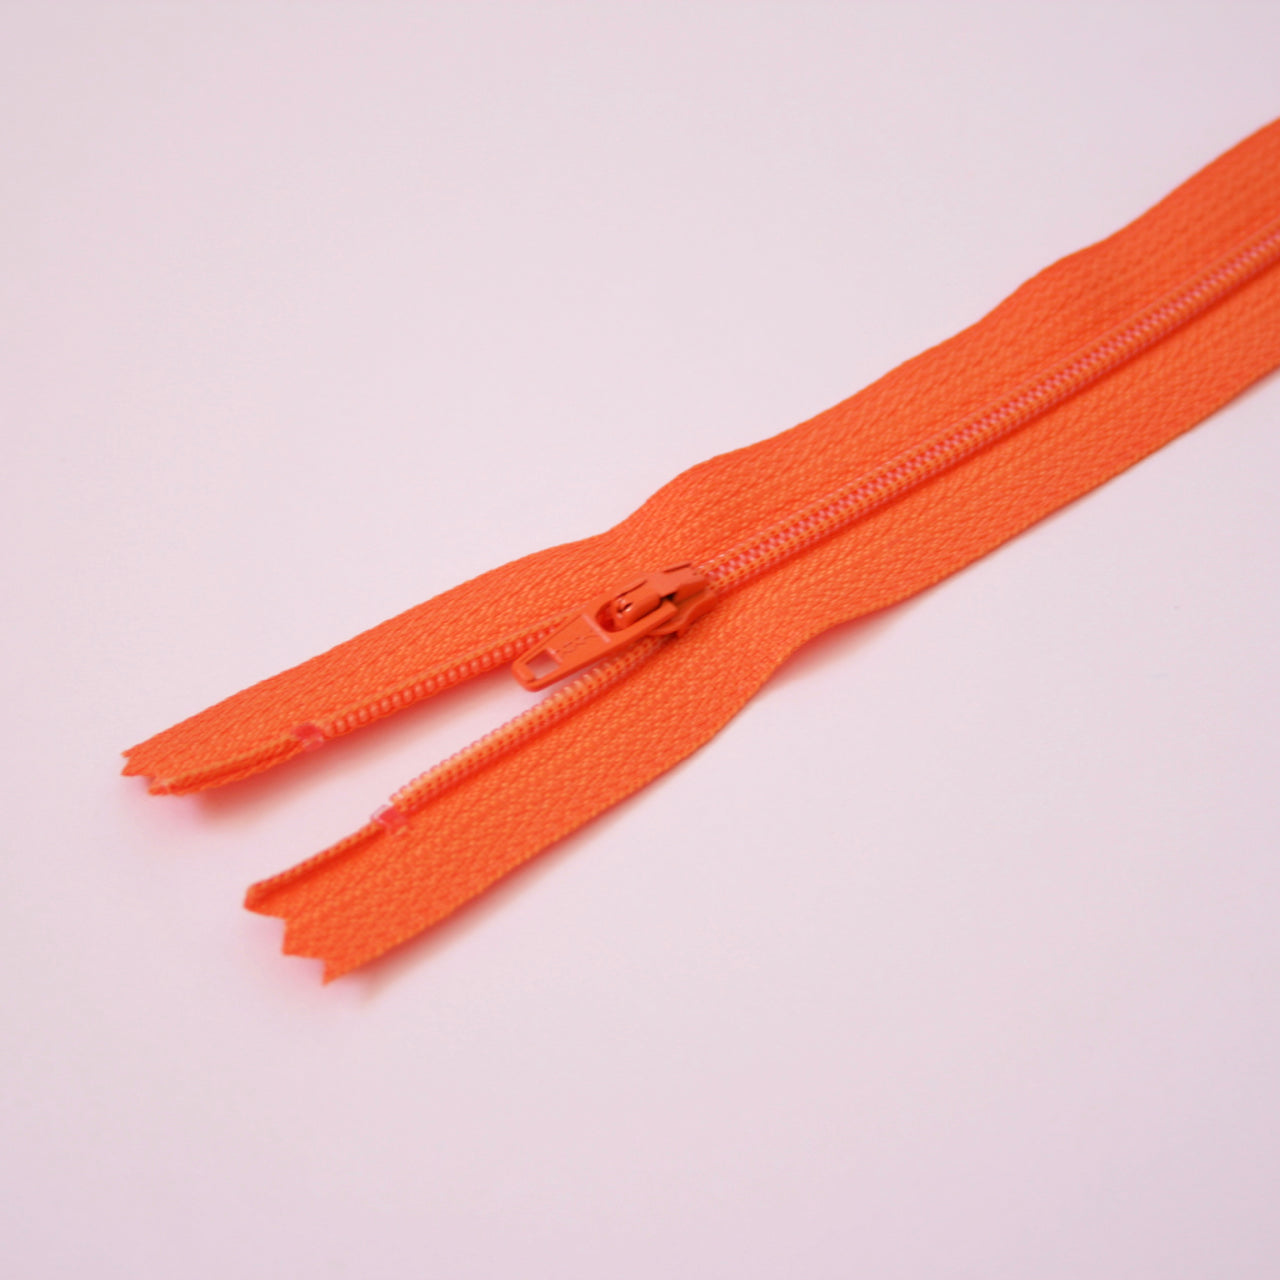 23cm 9 Inch Nylon YKK Dress Zip - 523 Orange